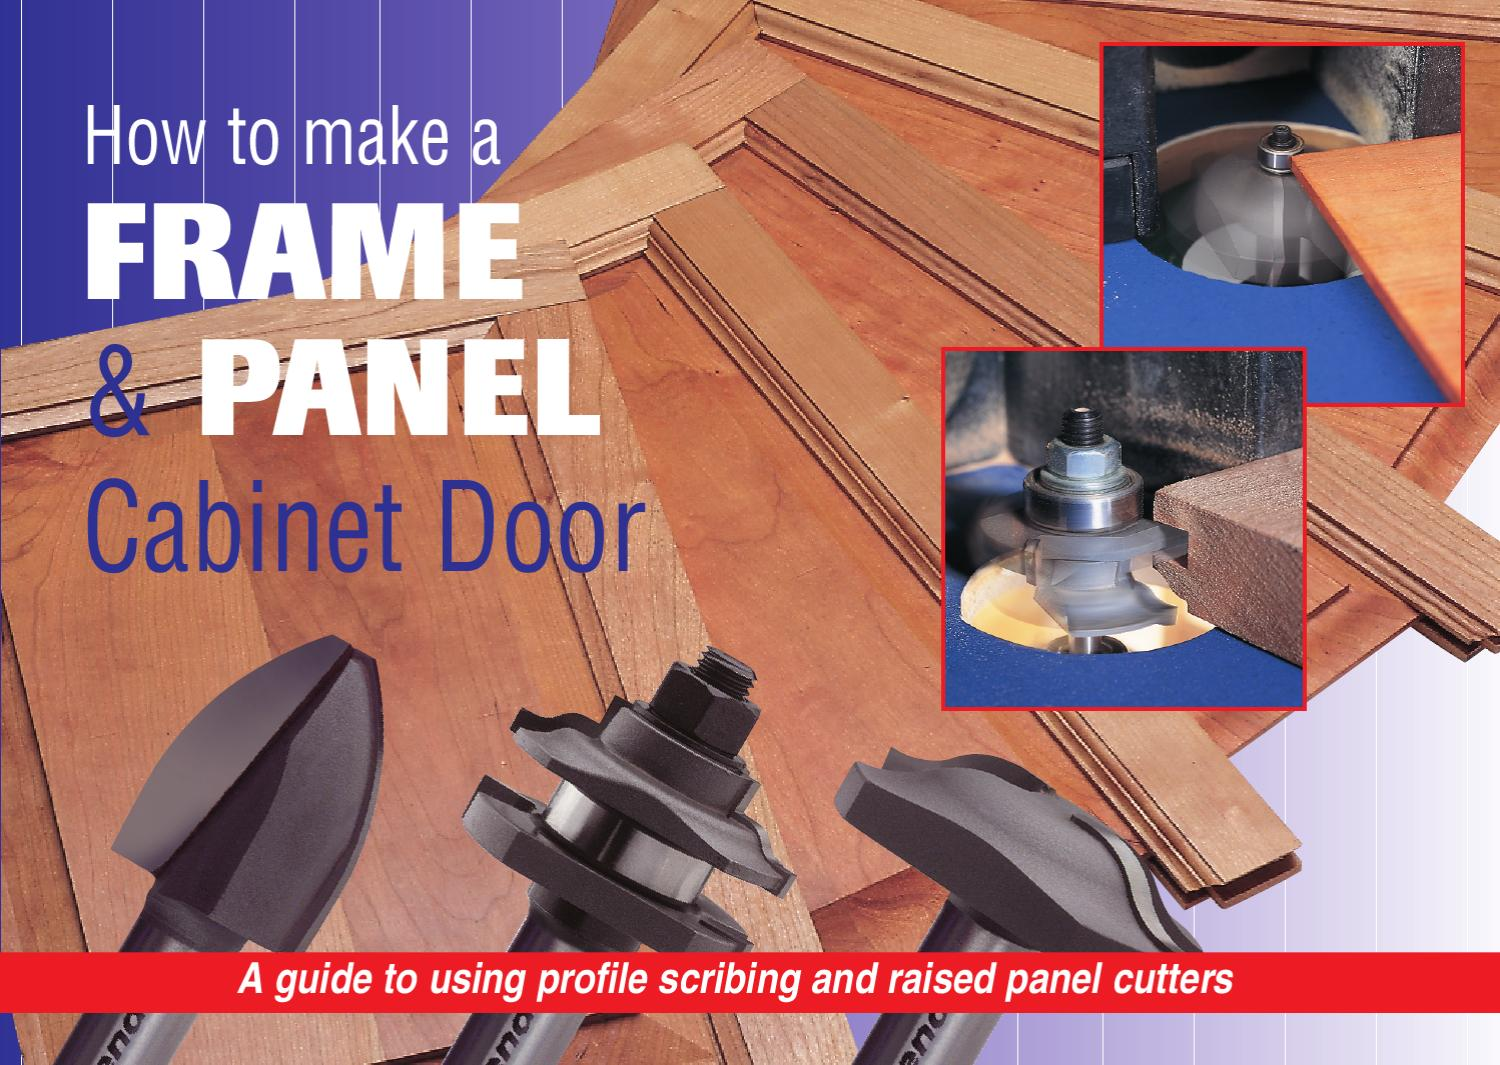 How To Make A Frame Panel Cabinet Door By Trend Issuu